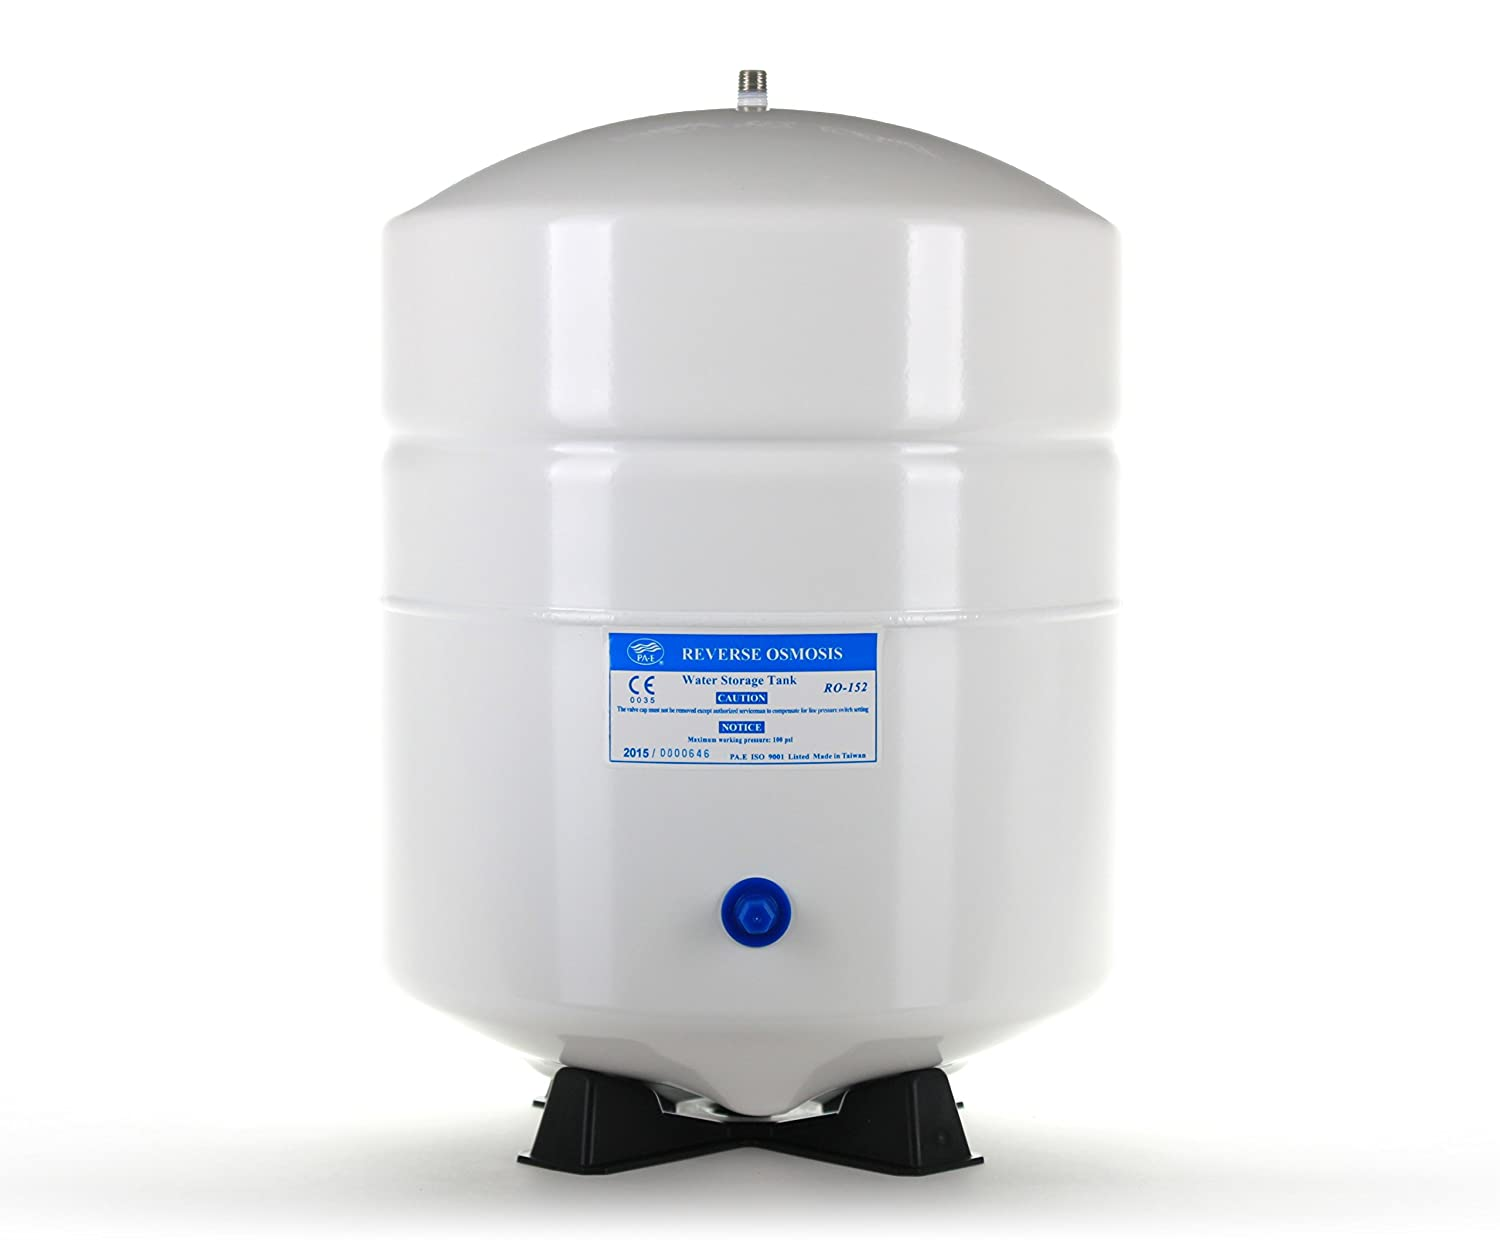 6.0 Gallon Reverse Osmosis RO Water Storage Tank by PA-E by Complete Filtration Services 5.5 Draw-down